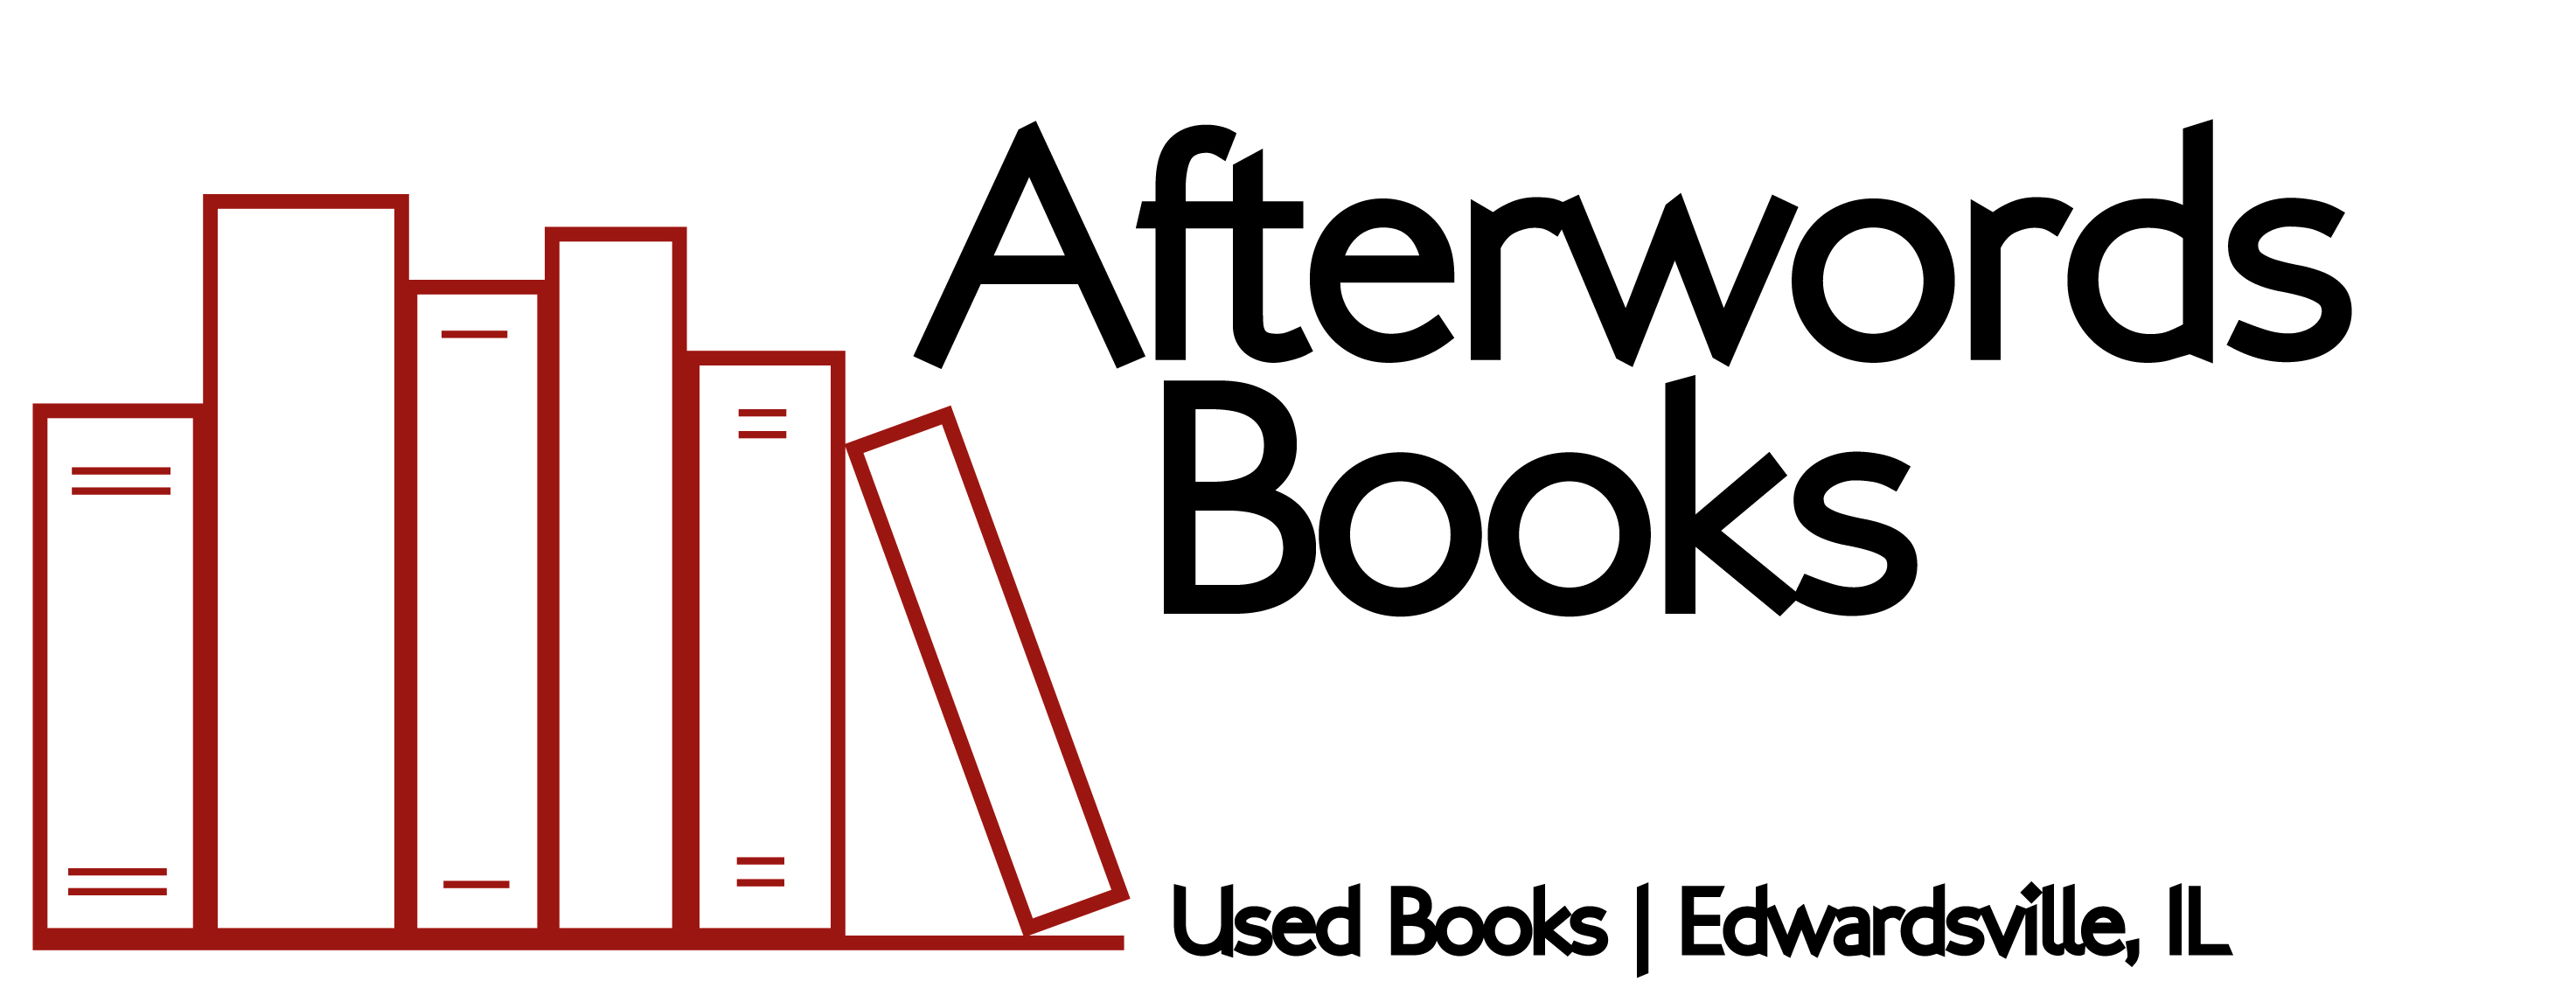 afterwords books used new books edwardsville il ask about